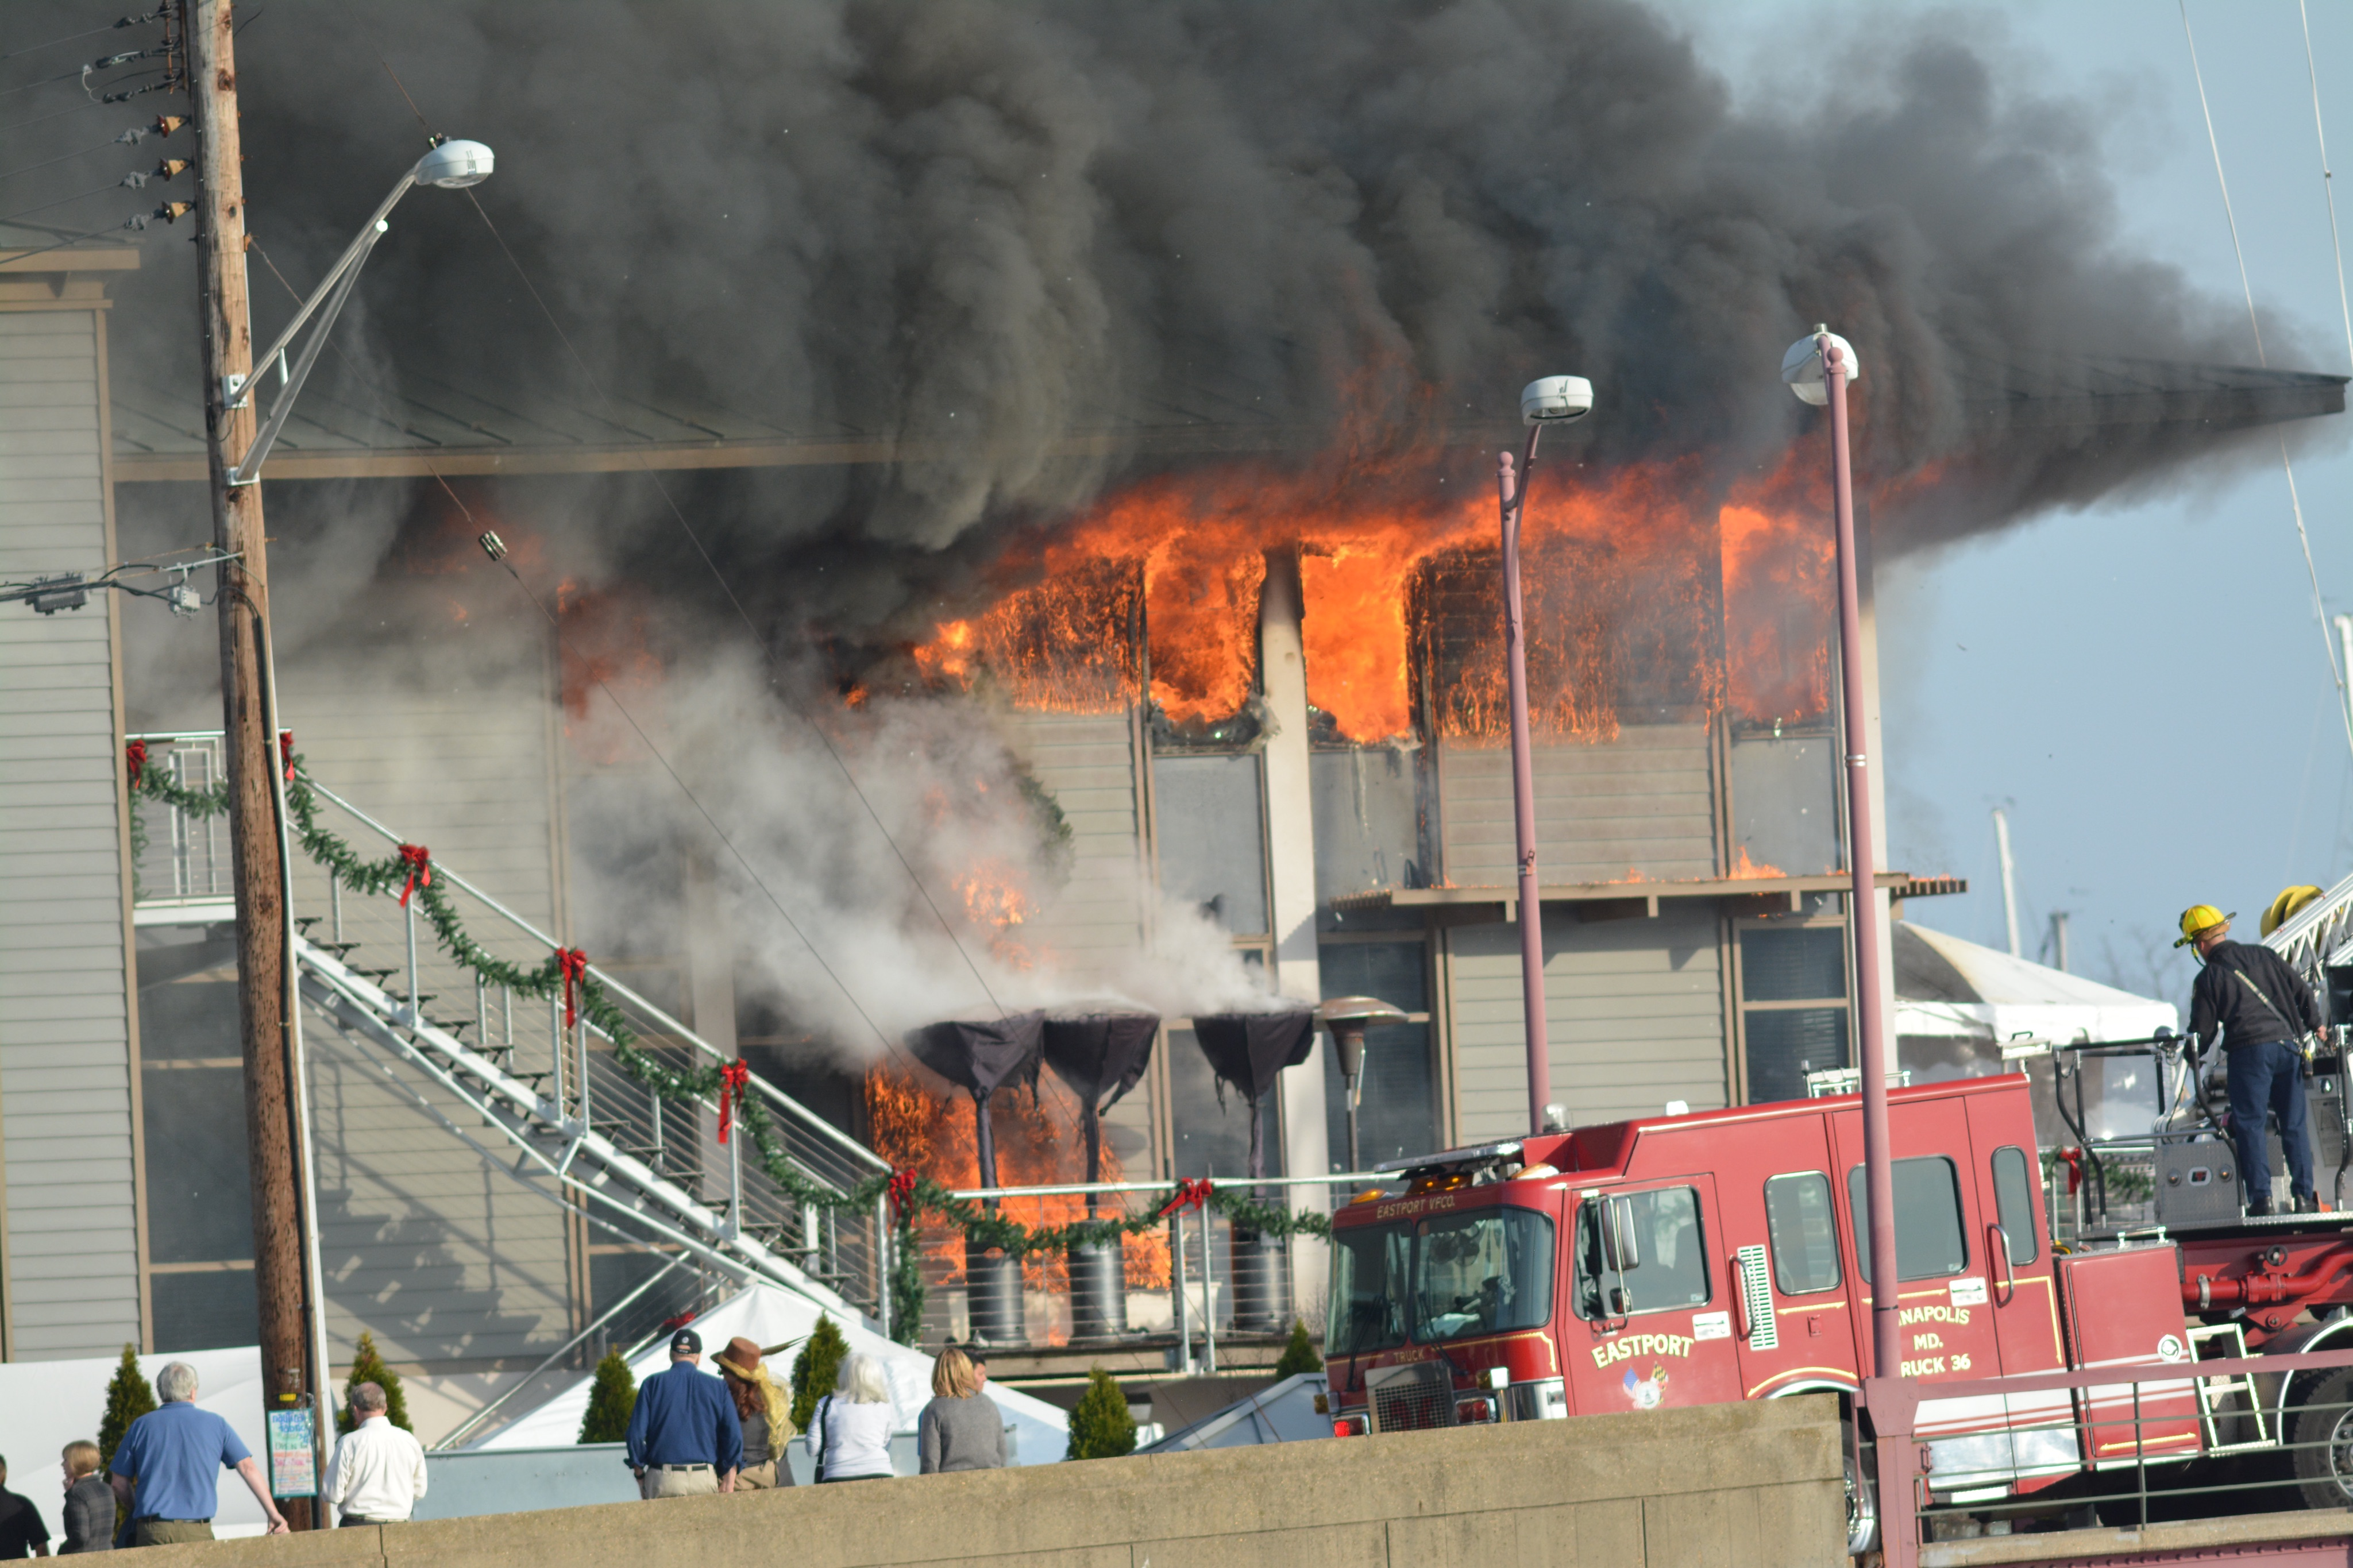 Fire breaks out at Annapolis Yacht Club (Photos)